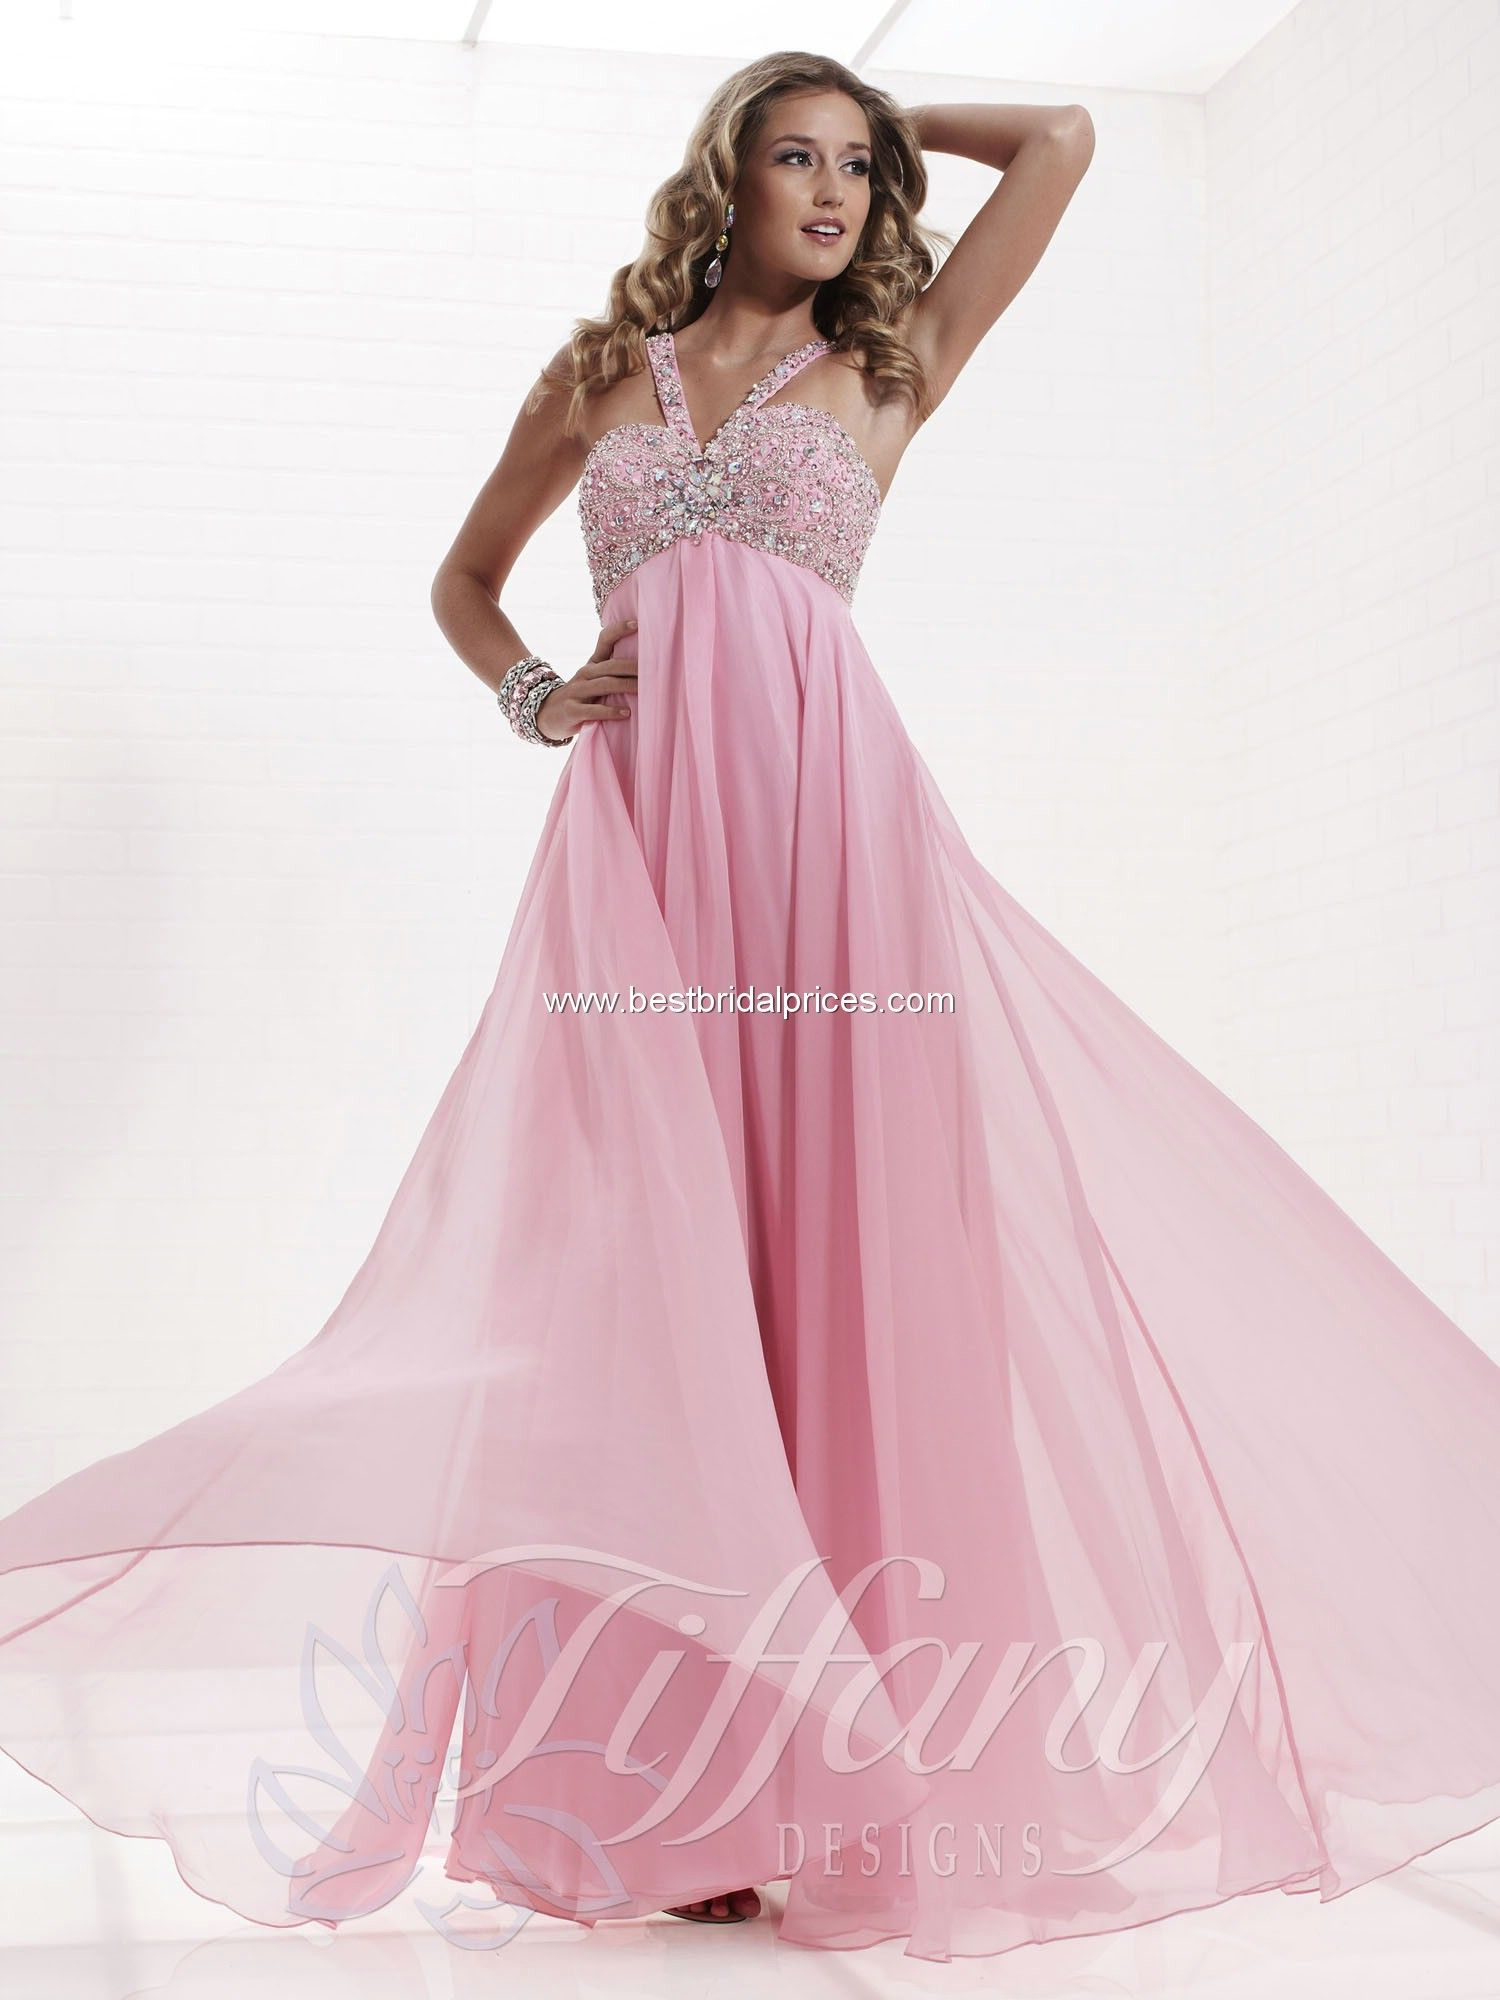 Tiffany Prom Dresses - Style 16740 | Take me to Prom | Pinterest